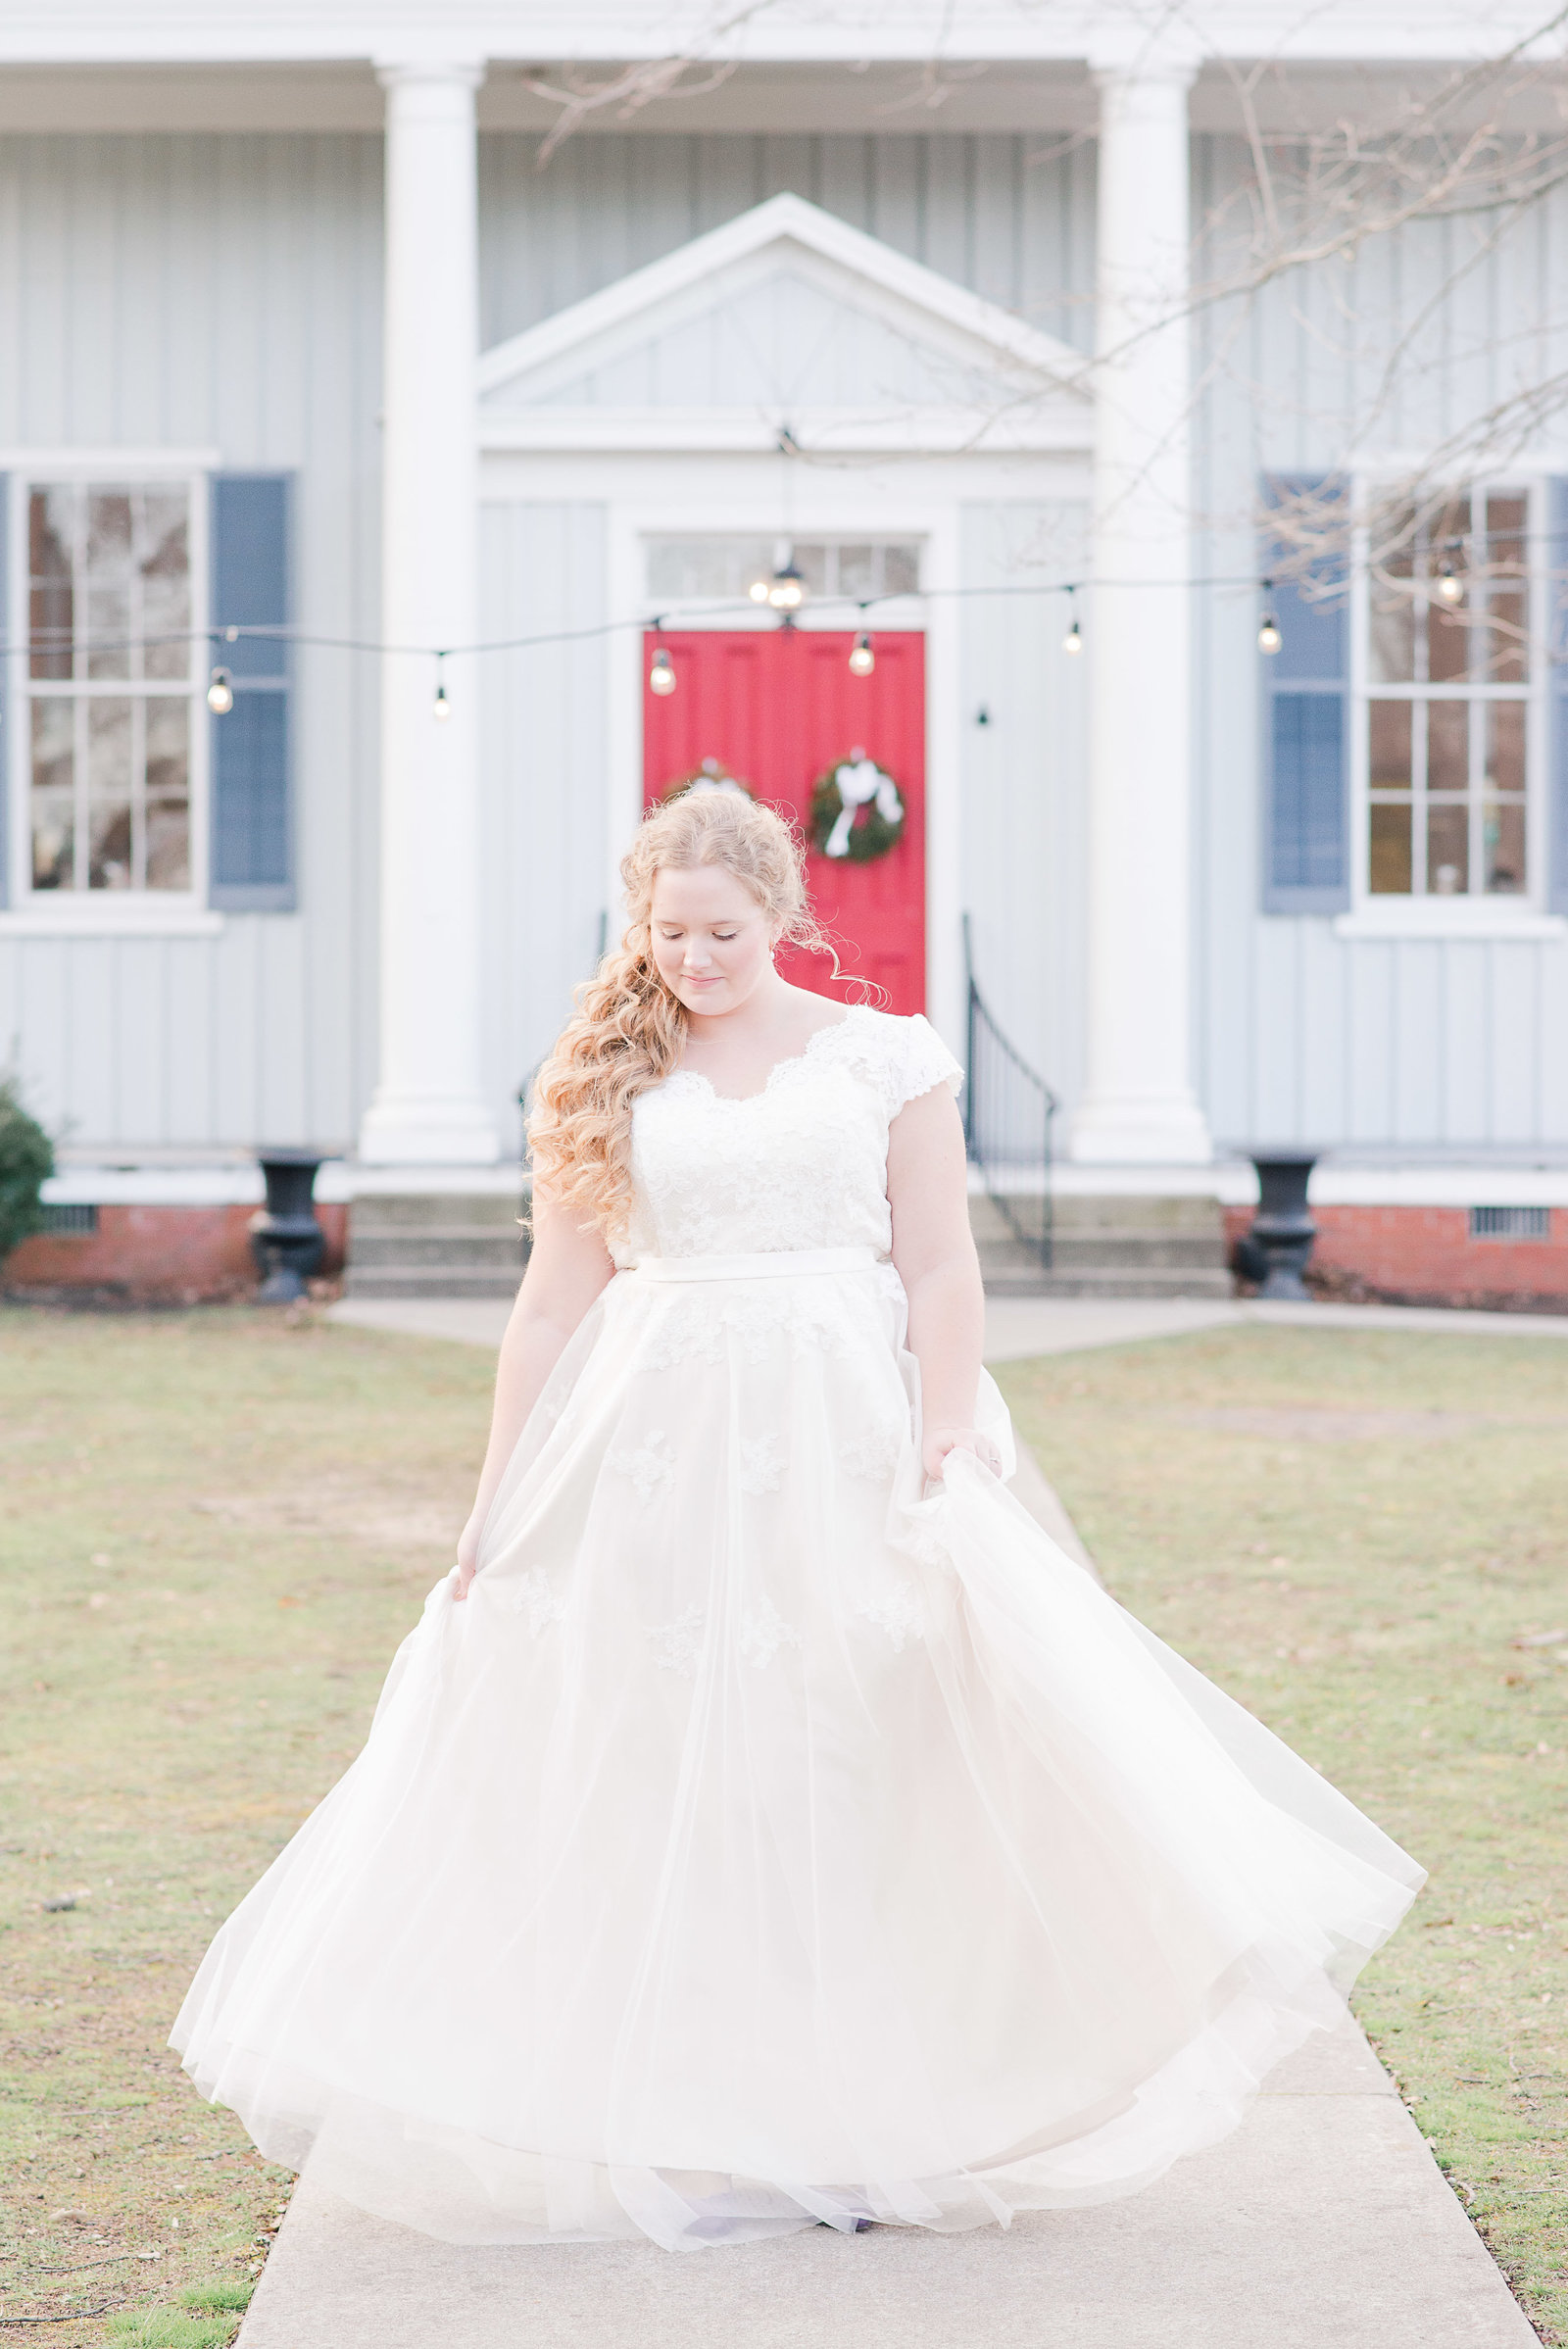 HolbertWedding_Portraits-96